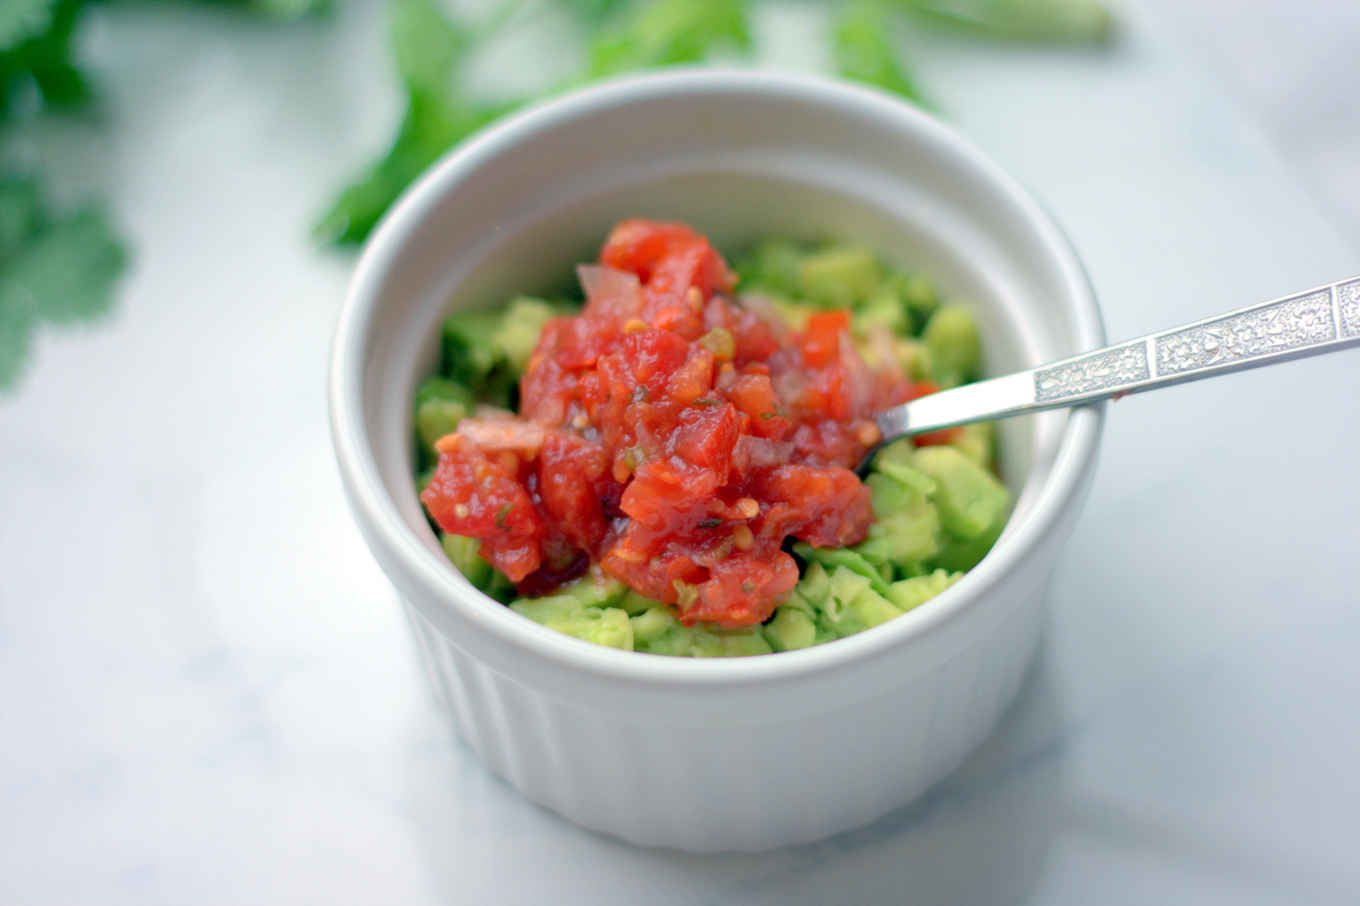 using salsa as a topping or mix-in for guacomole